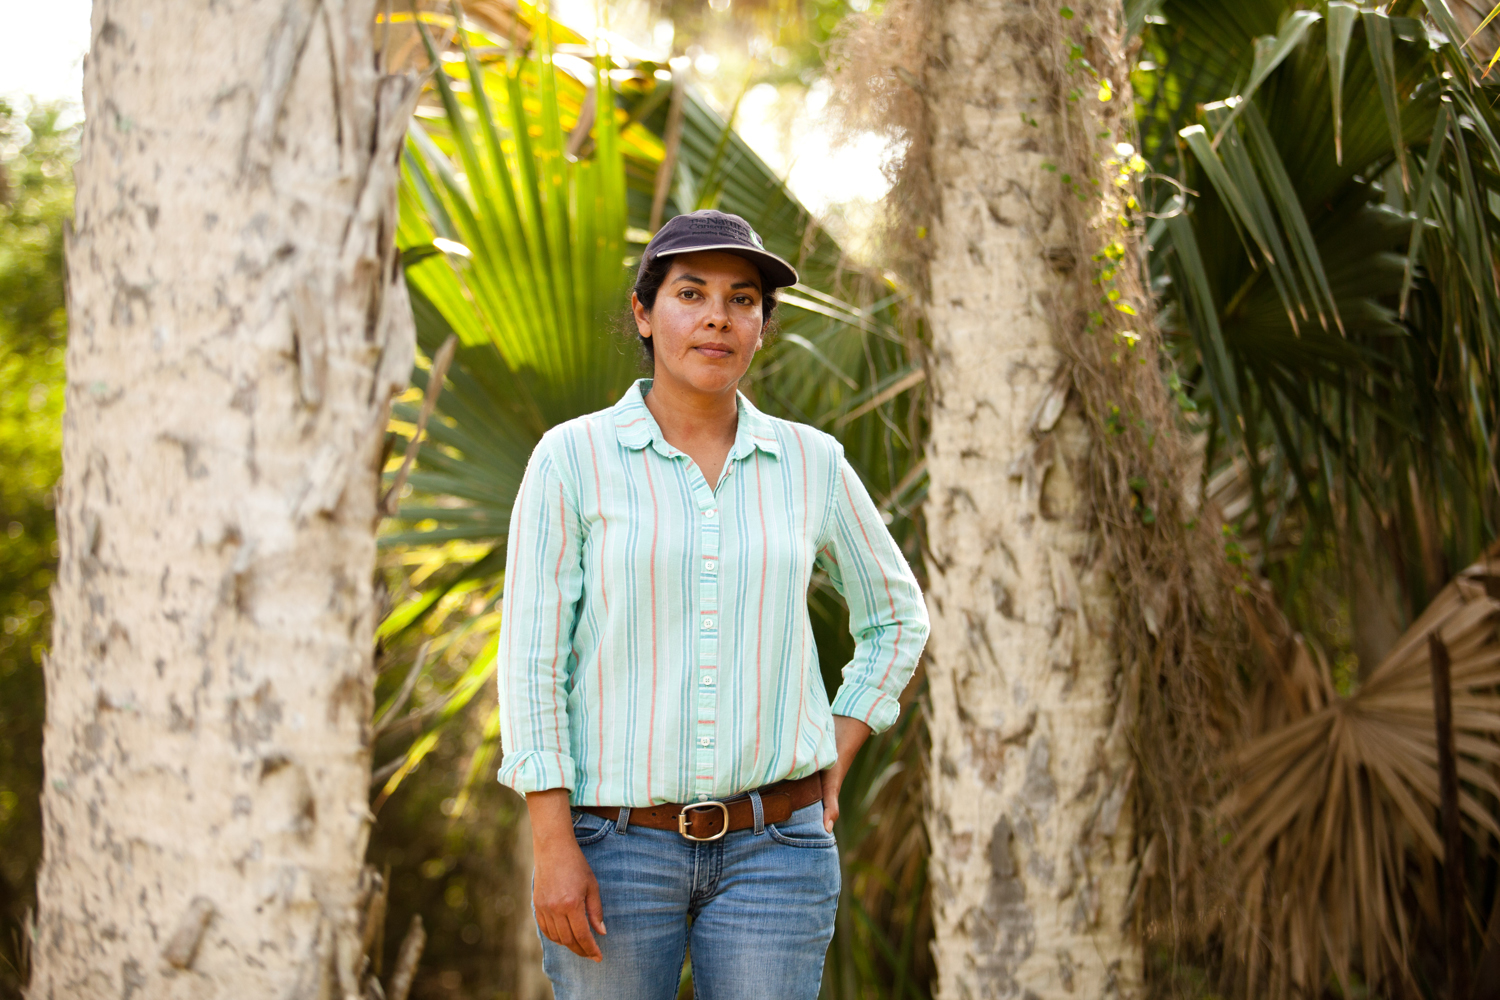 Sonia Najera, grassland manager for the Nature Conservancy, stands in sabal palm forest at the Lennox Foundation Southmost Preserve. The 1,100-acre preserve is home to some of the land remaining patches of sabal palm forest in the United States.It is prime habitat for the endangered ocelot, a small cat that looks like a tiny leopard.